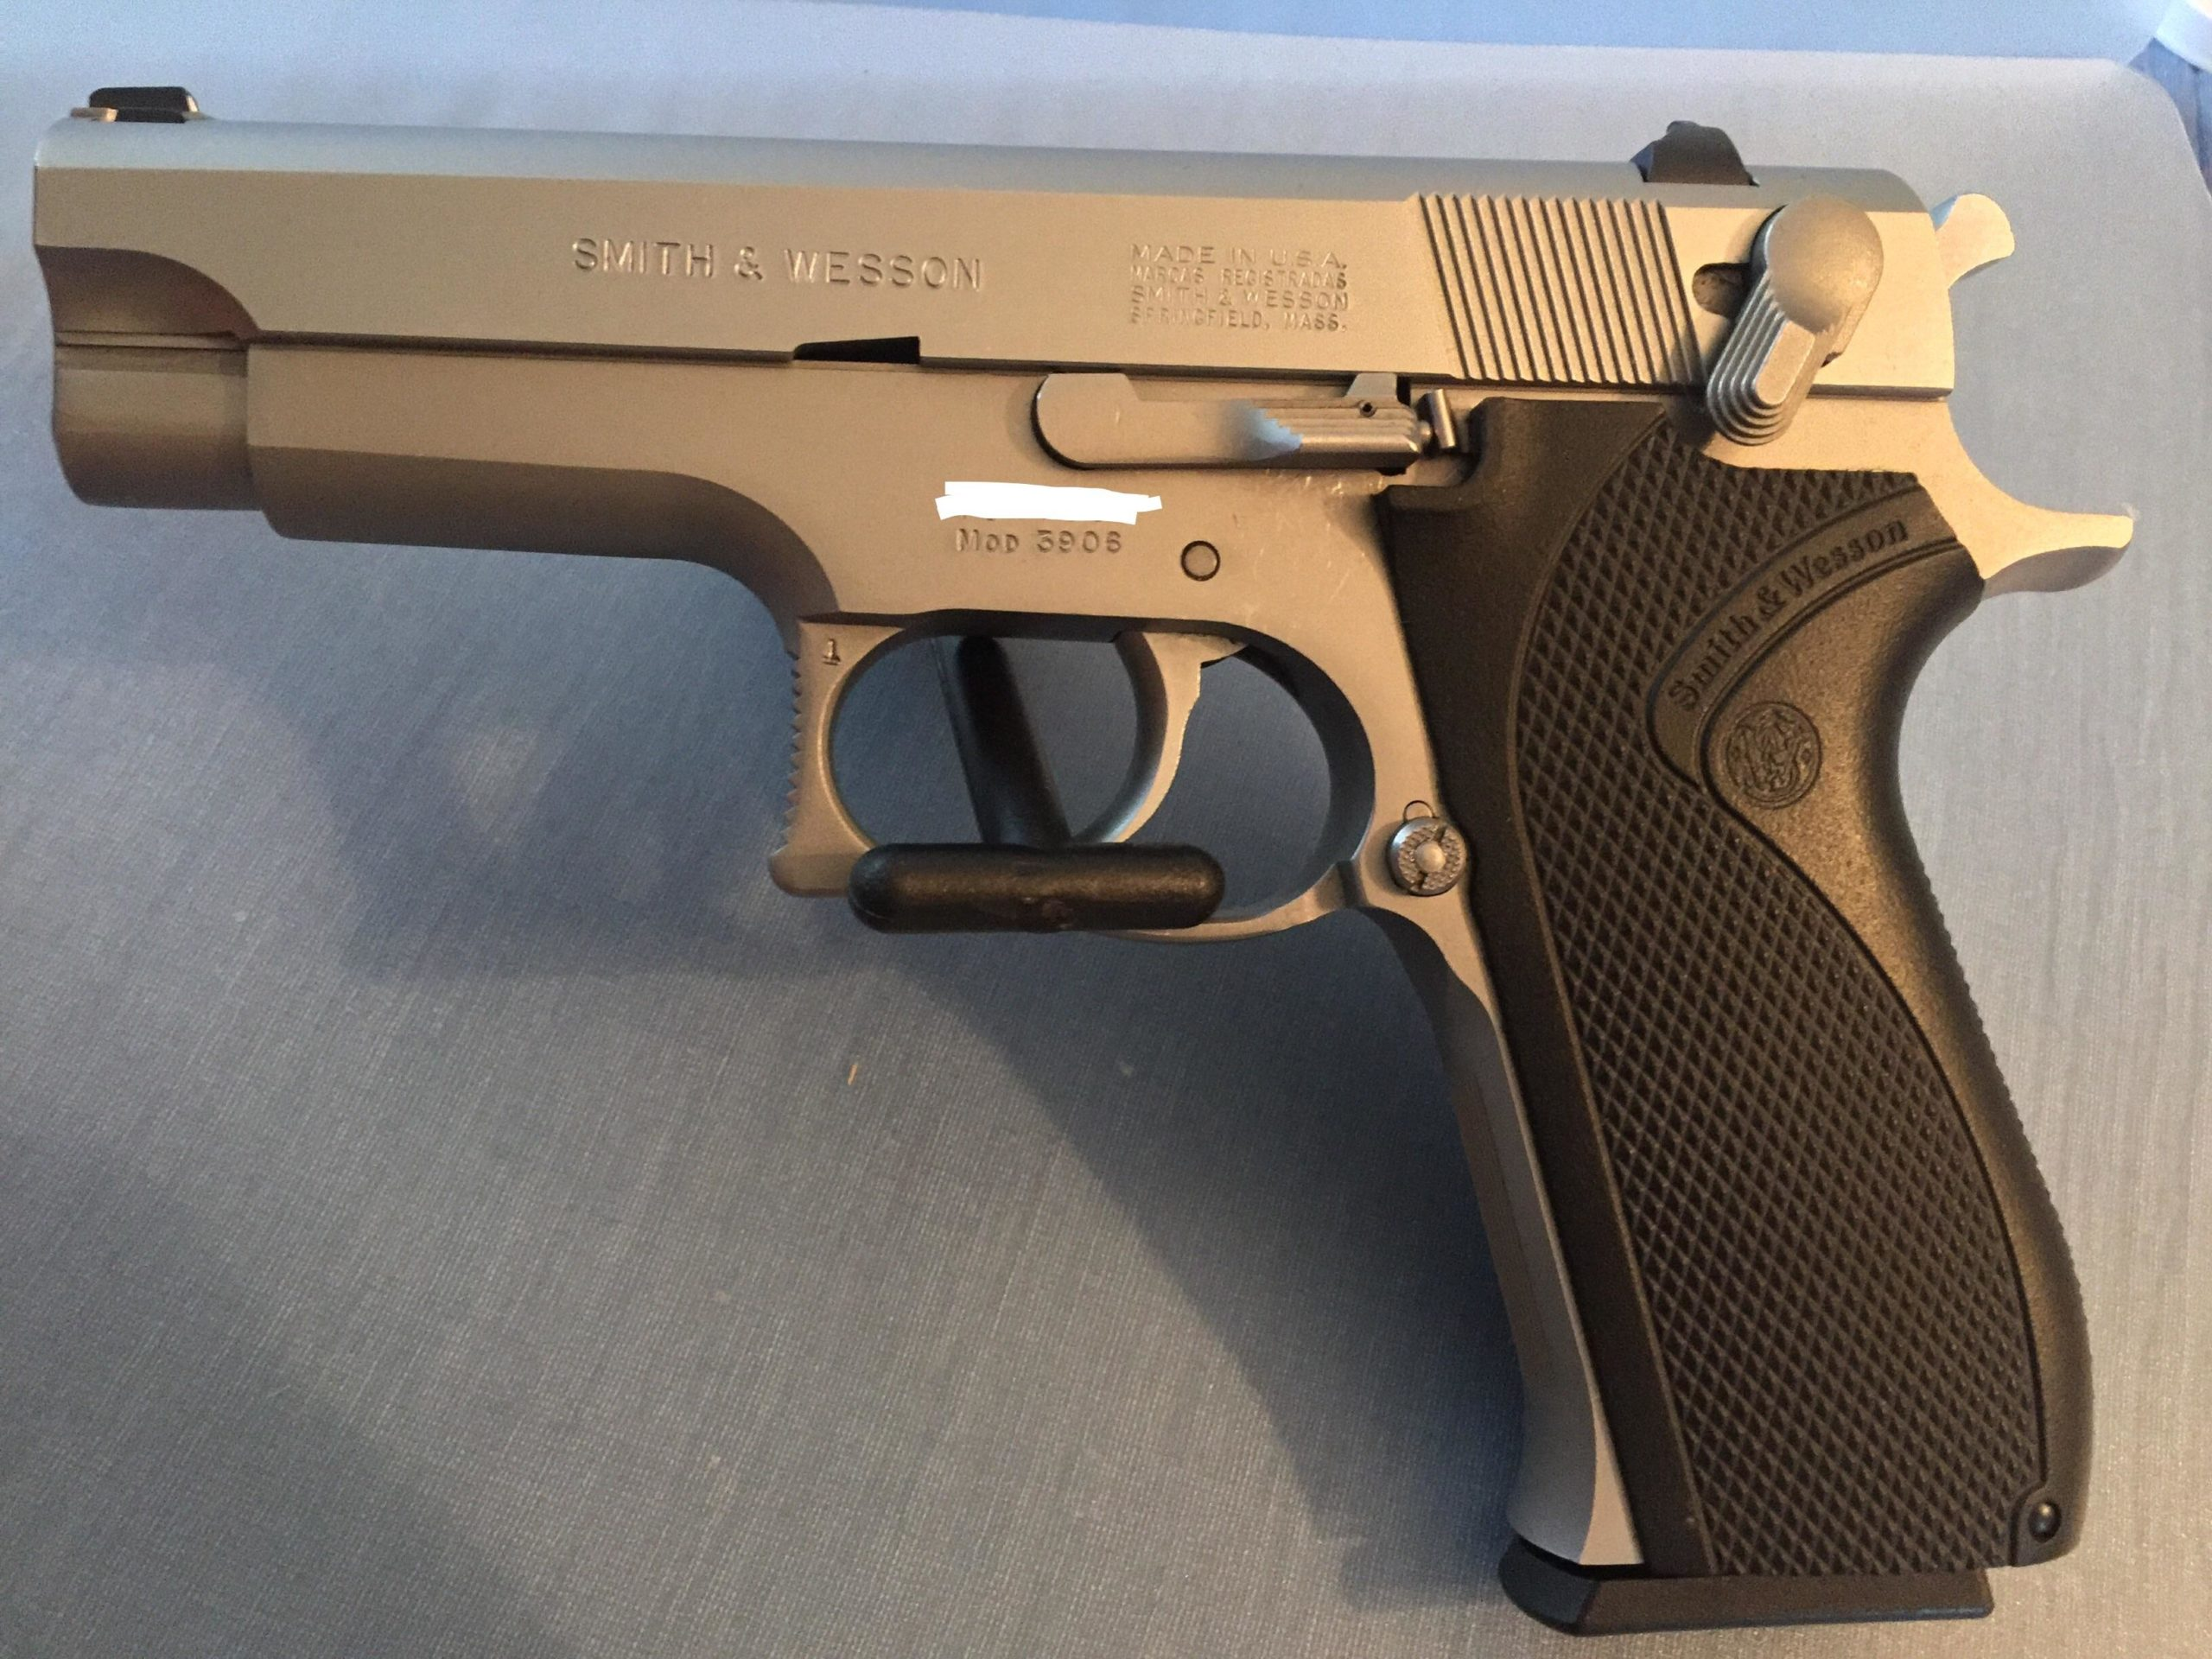 S&W 3906 stainless 9mm. semi automatic